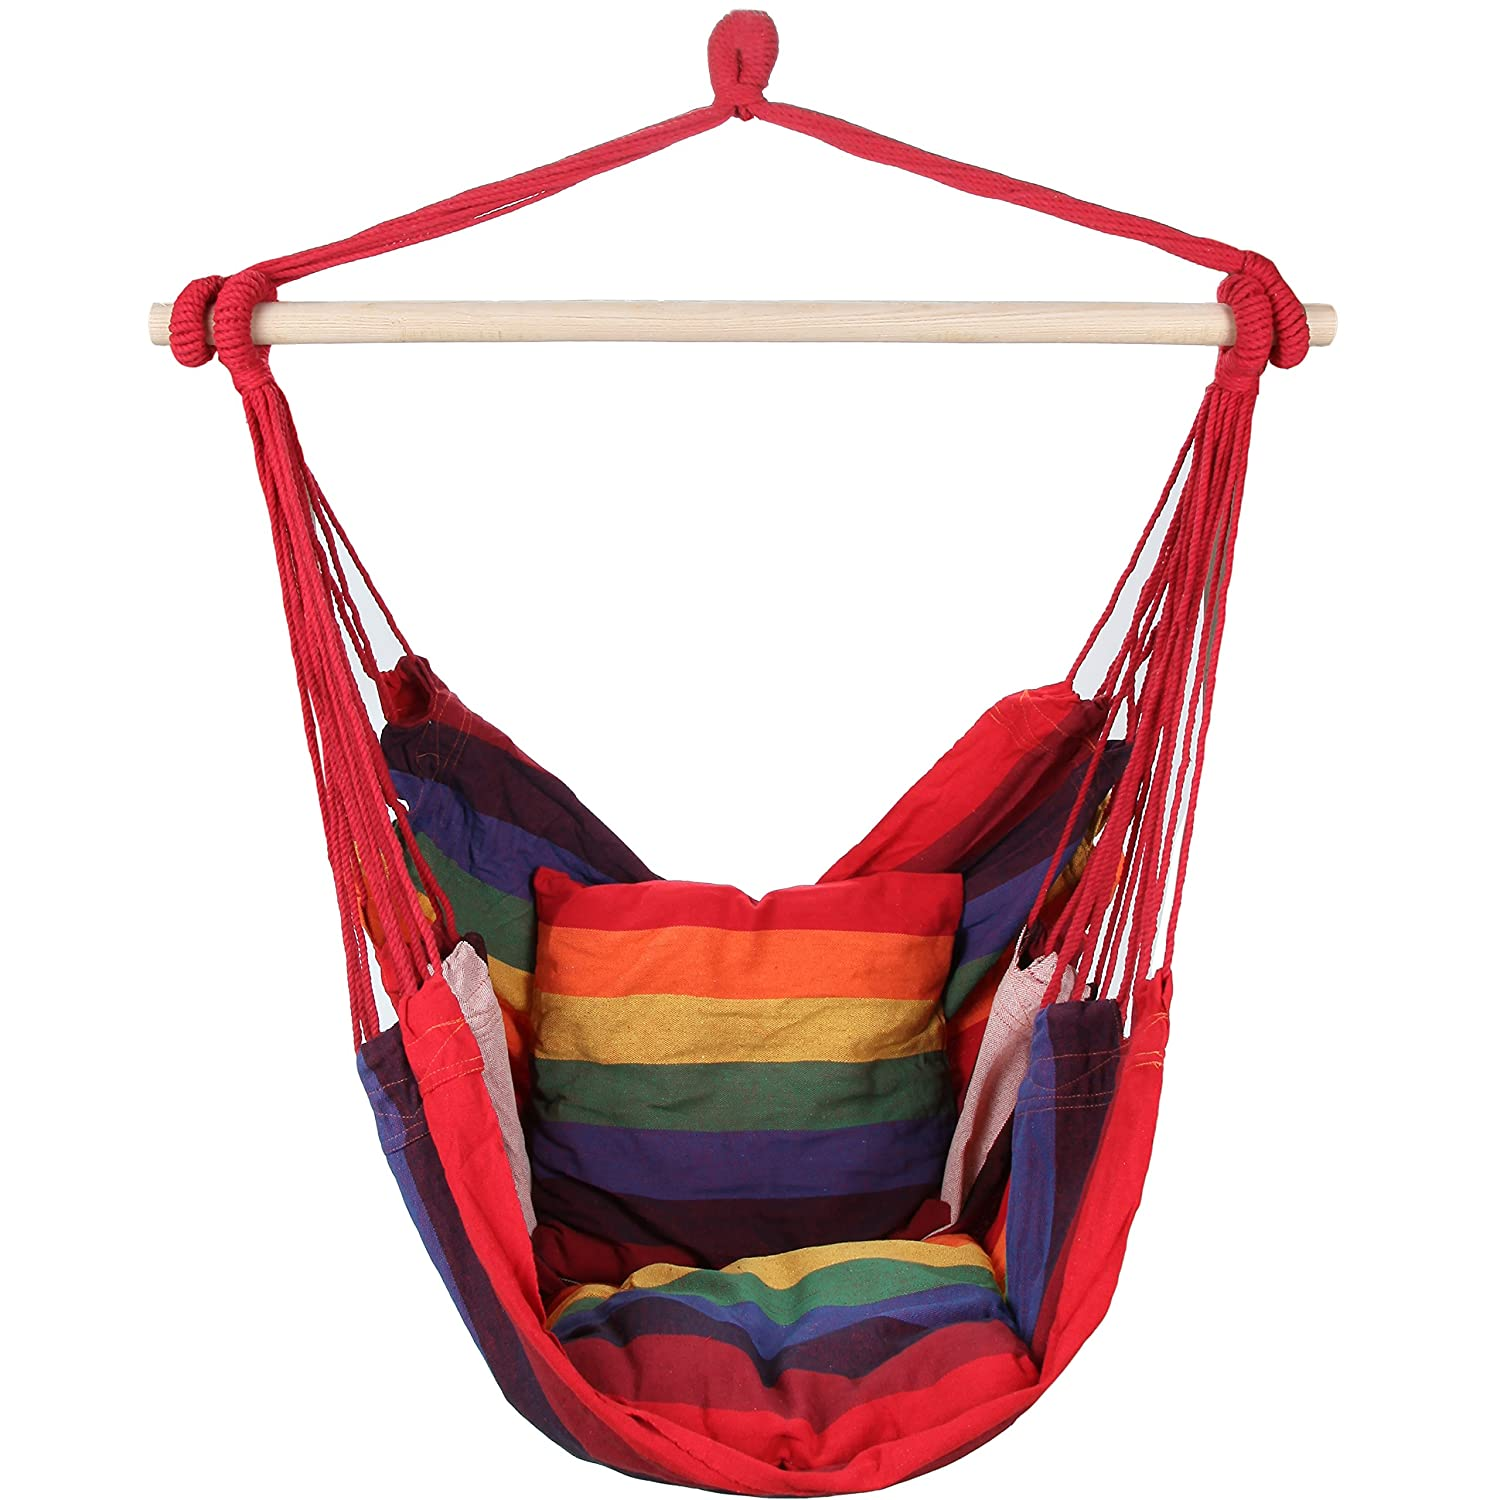 Amazon Com Swing Hanging Hammock Chair With Two Cushions Red Garden Outdoor